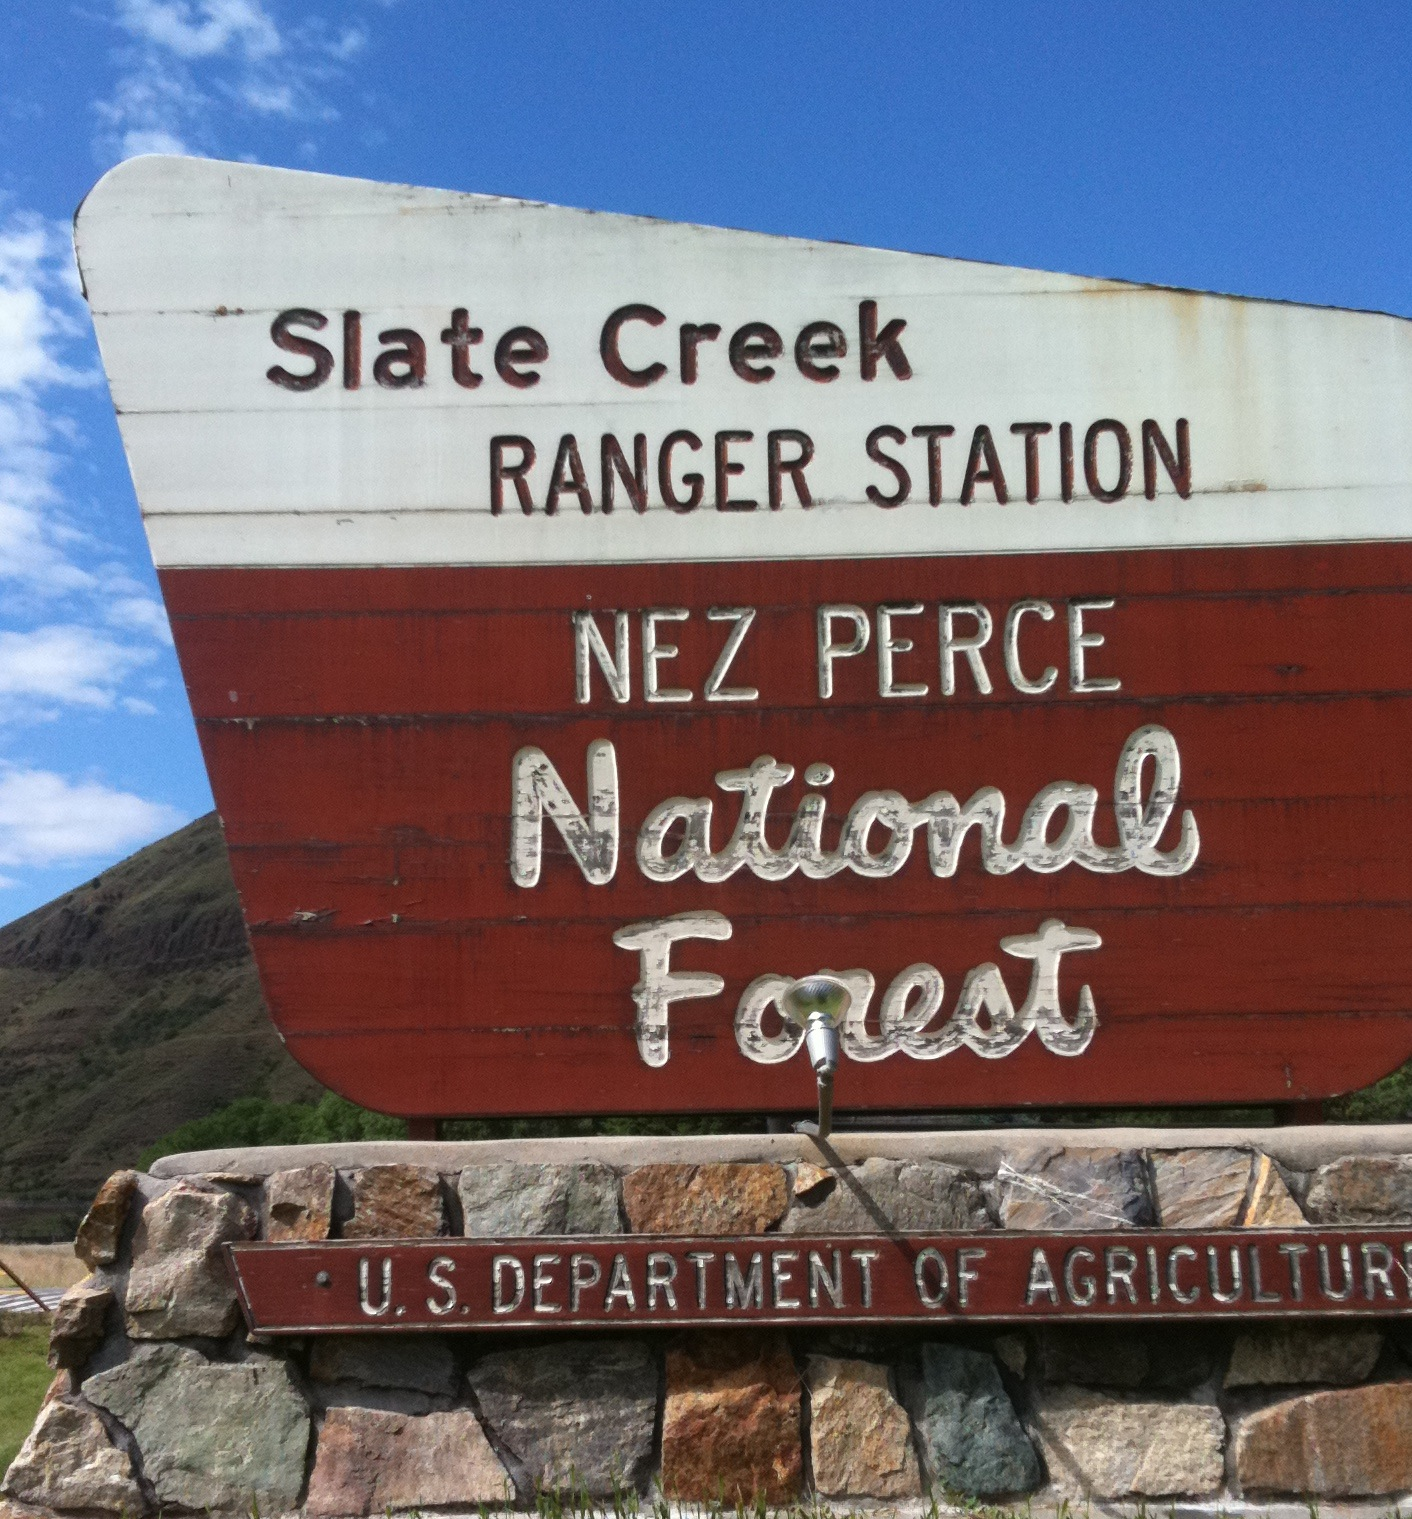 Nez Pierce National Forest